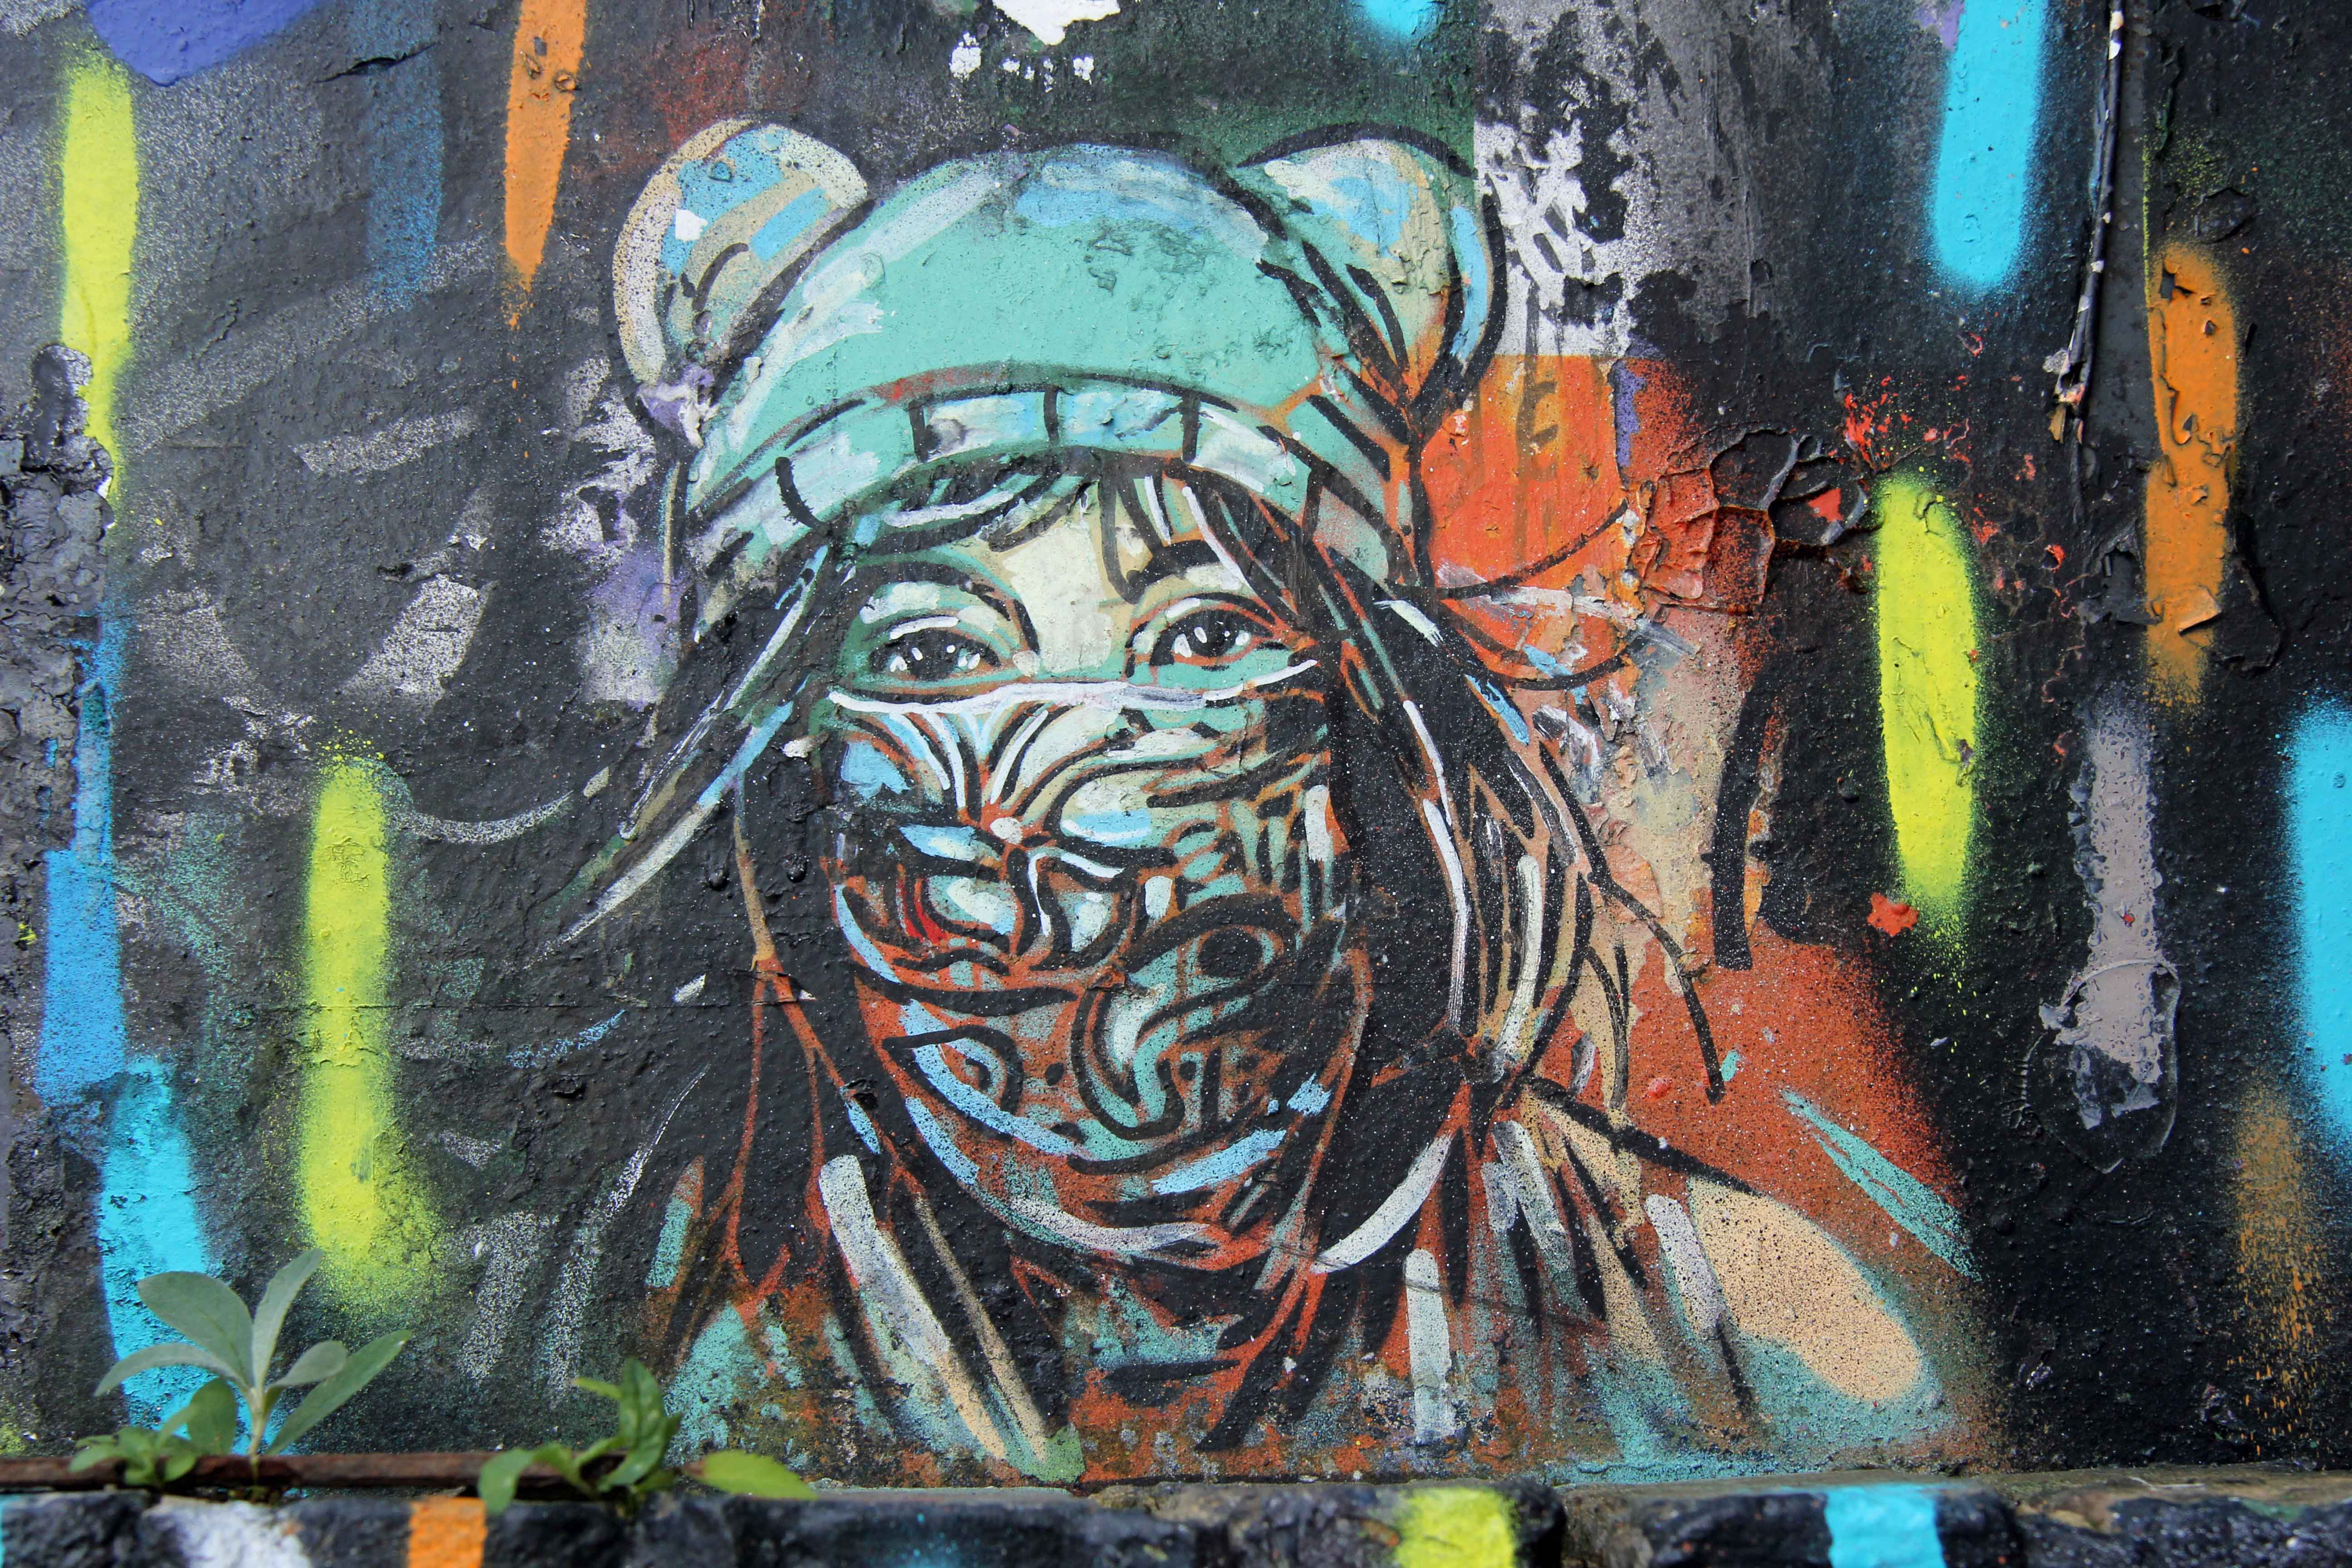 Girl in a bandana (Nina Guemy) - Street Art by Alicé in East London